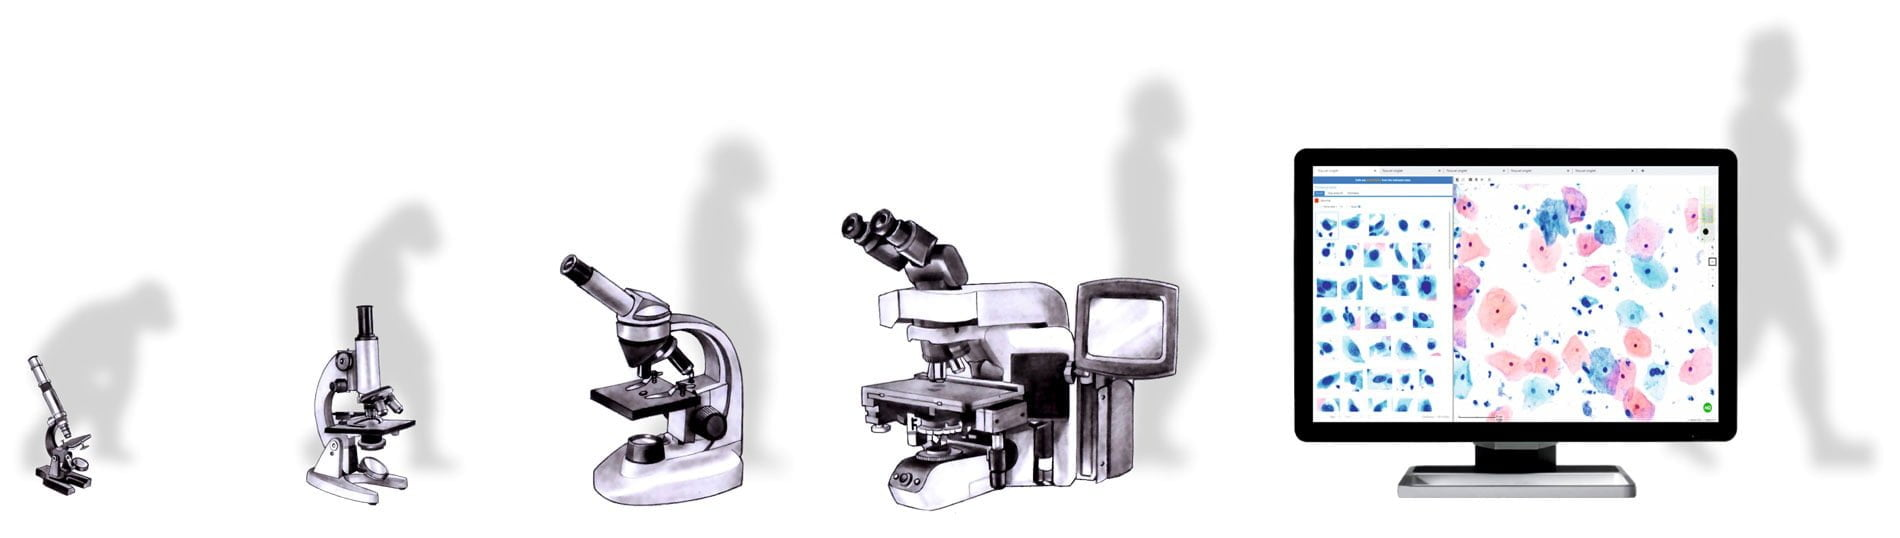 Evolution of cytology from microscope to digital